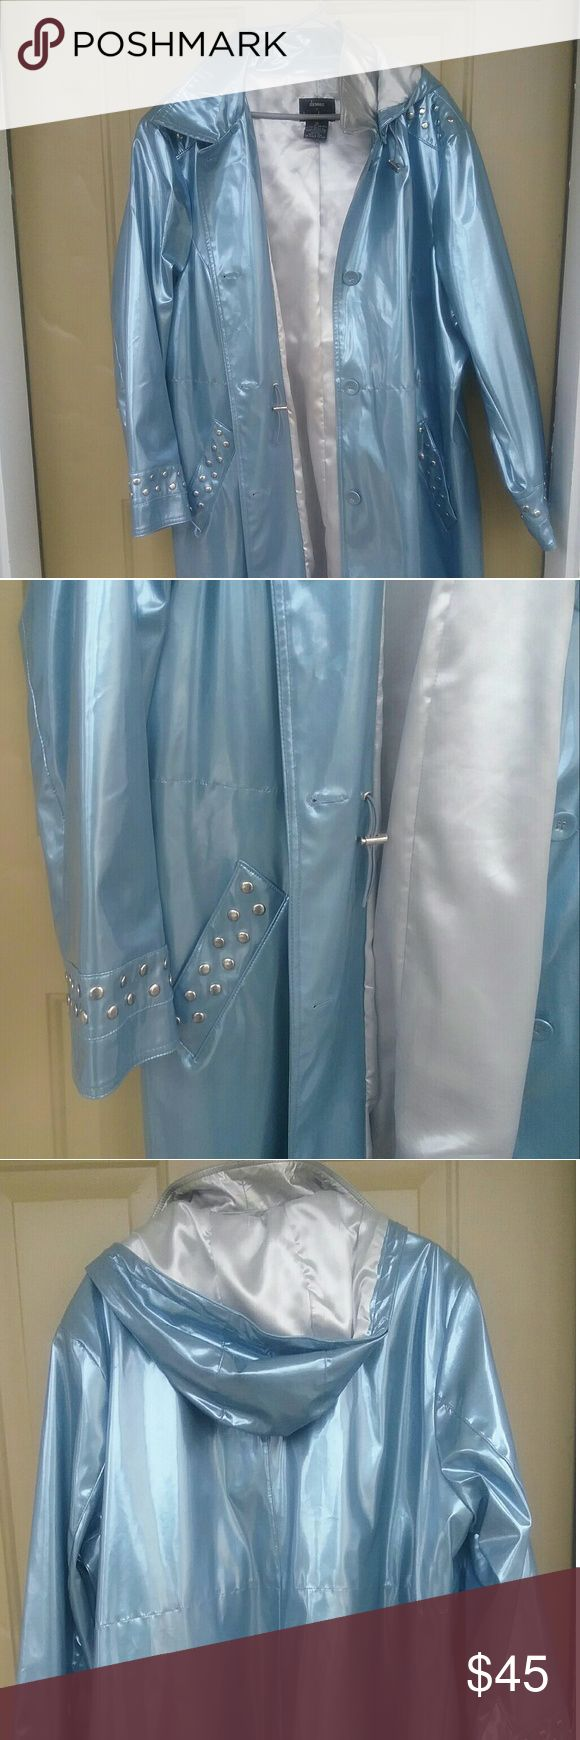 Dennis Basso Rain coat plus size Very pretty  Metallic Blue  hooded Raincoat  plus size 3x       worn 4 times  The coat is in  Excellent condition and  will keep you dry and comfortable  Detachable hood Dennis Basso  Jackets & Coats Trench Coats